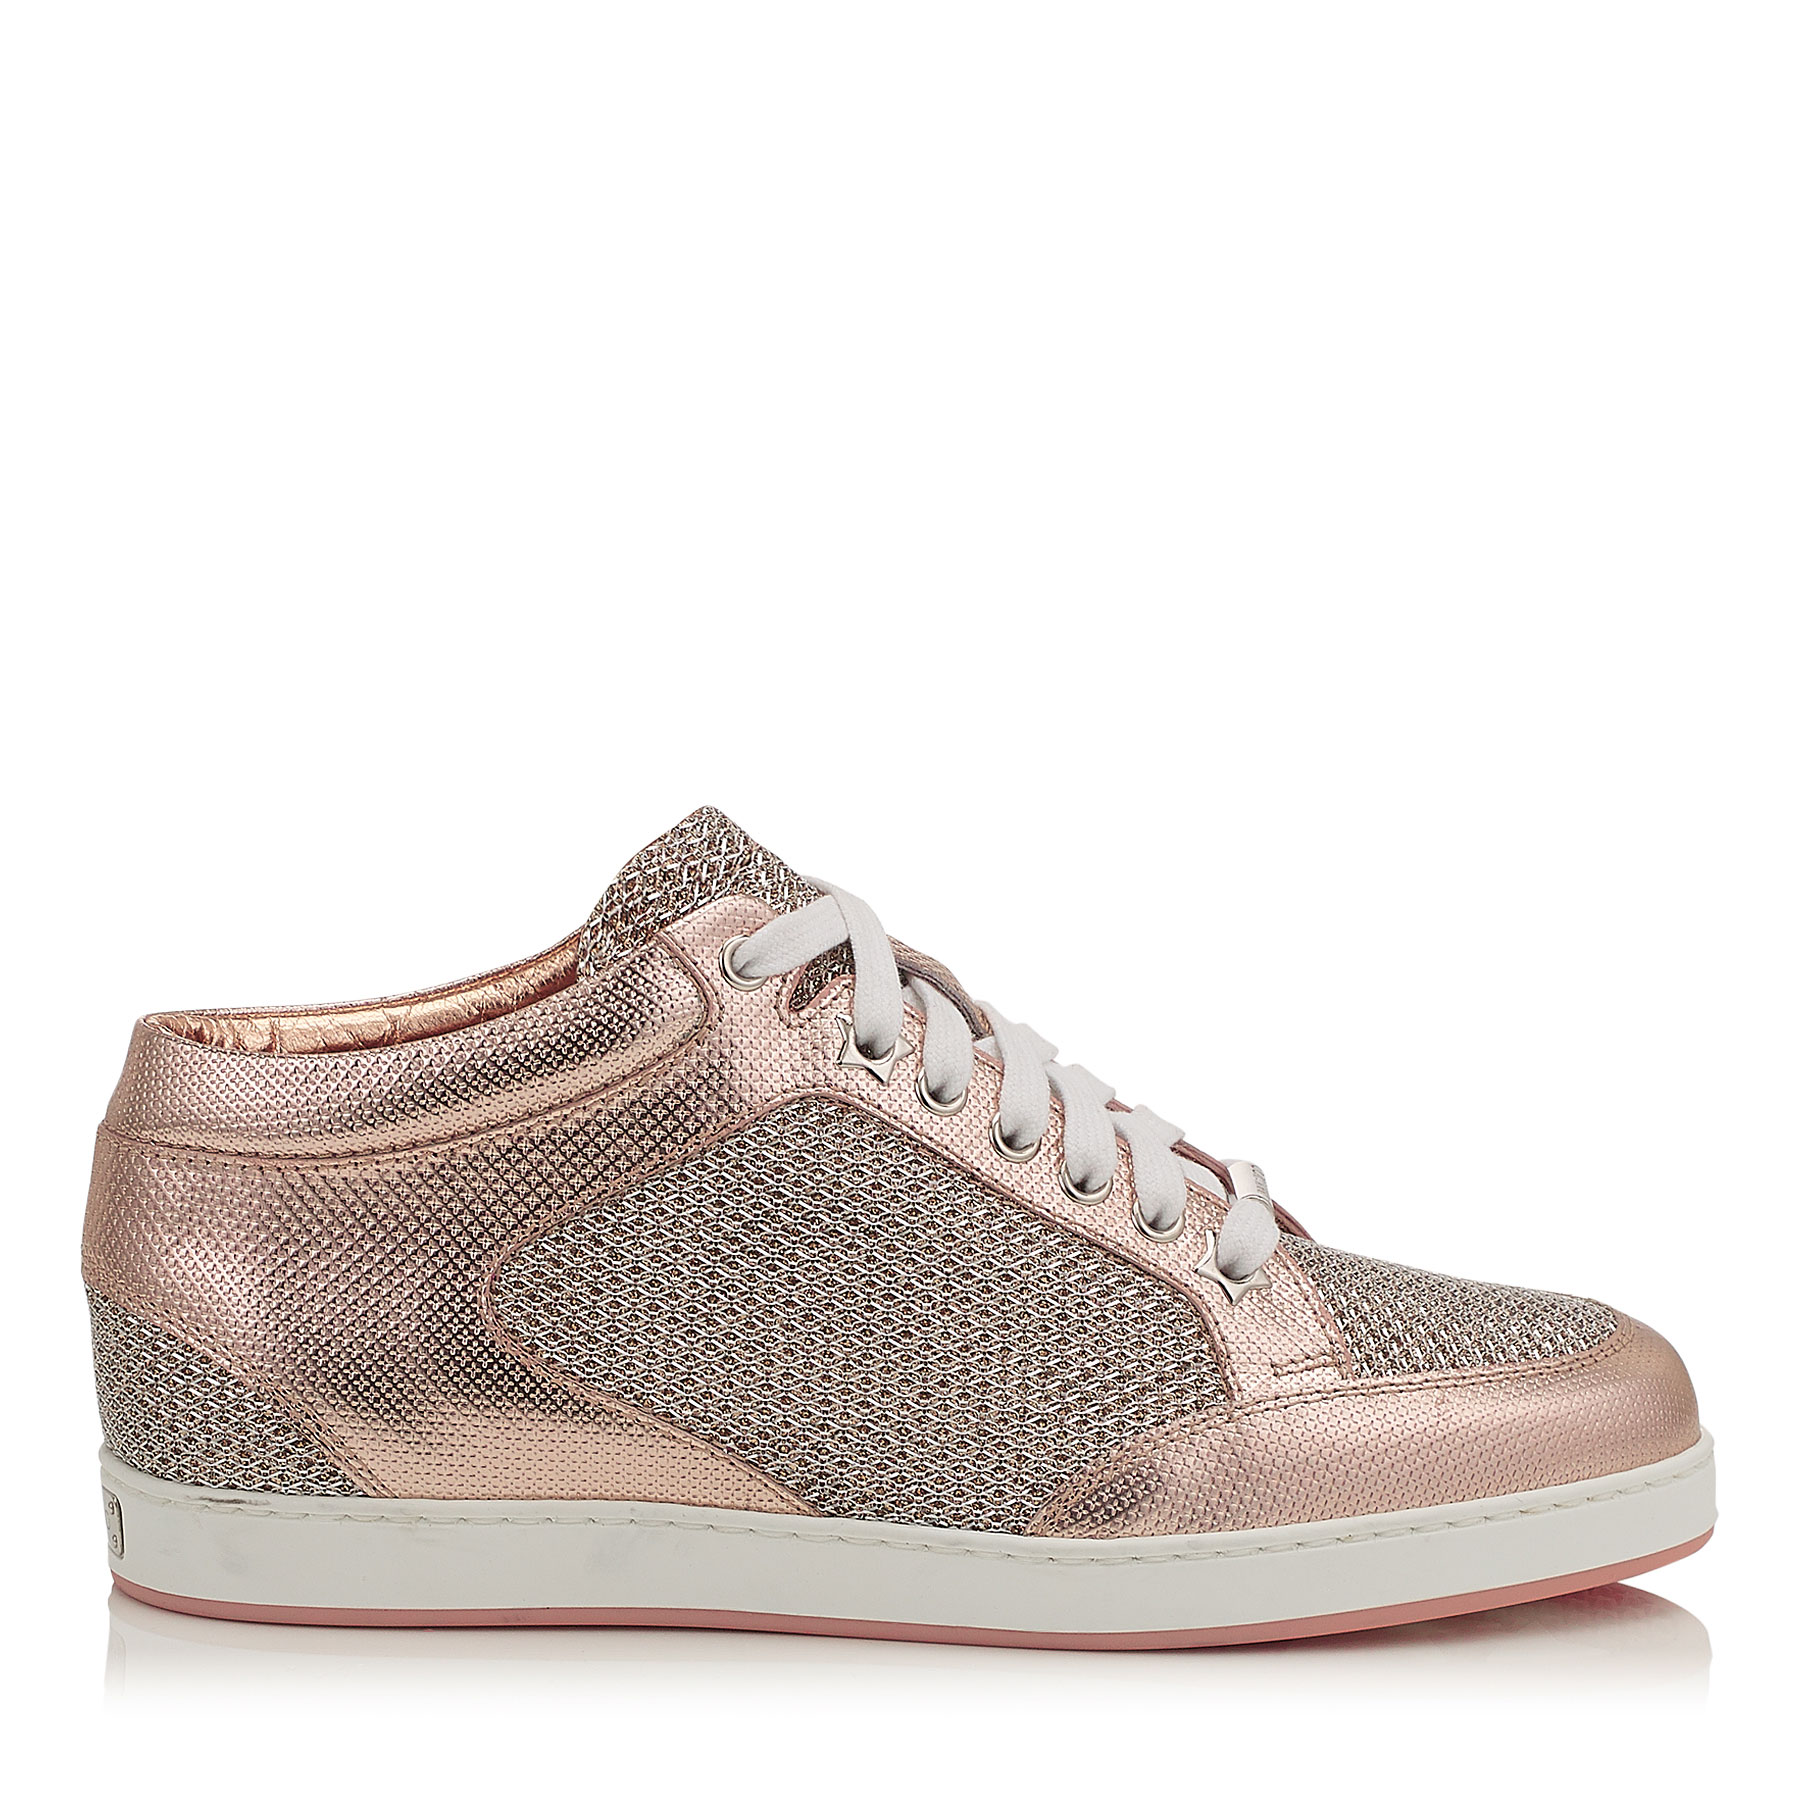 MIAMI Tea Rose Metallic Printed Leather and Glitter Low Top Trainers by Jimmy Choo